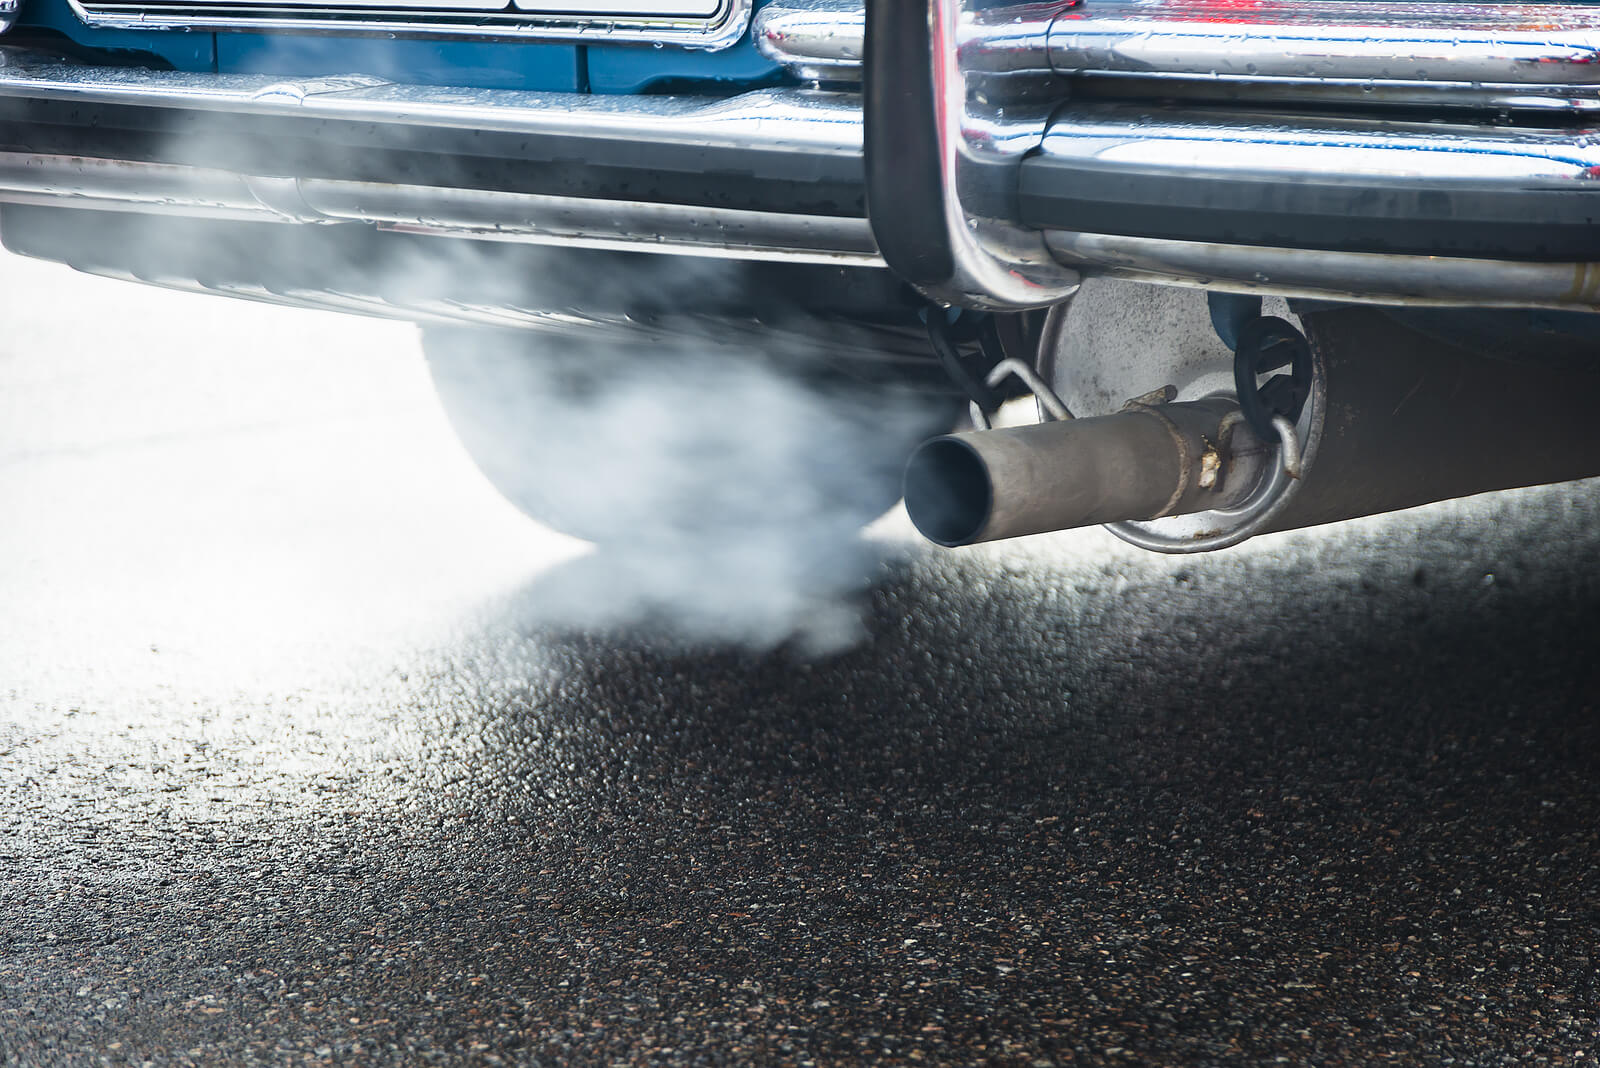 exhaust pipe with white smoke emitting exhaust emissions, reduced by AdBlue and DPF cleaning